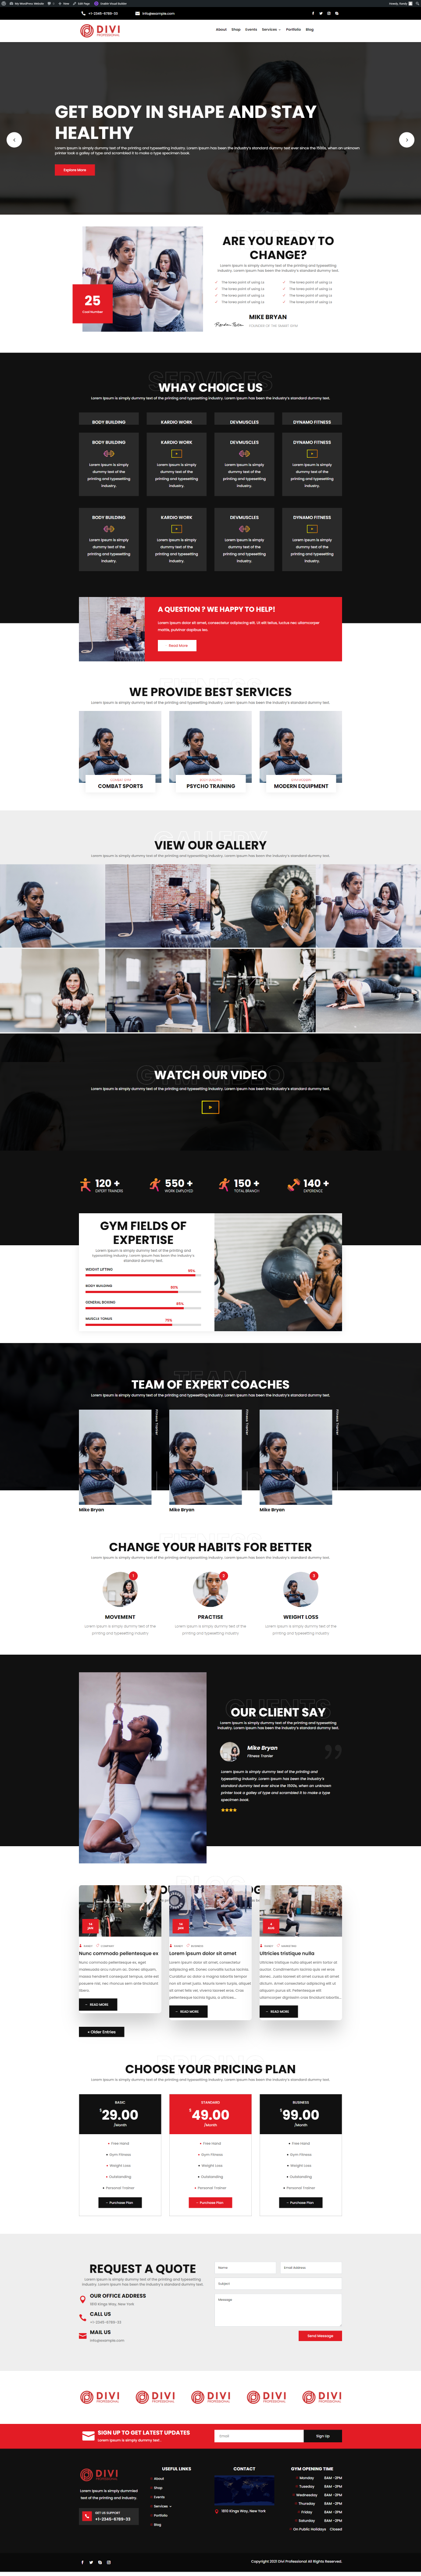 Ultimate Divi Modules UI Bundle Fitness and Gym